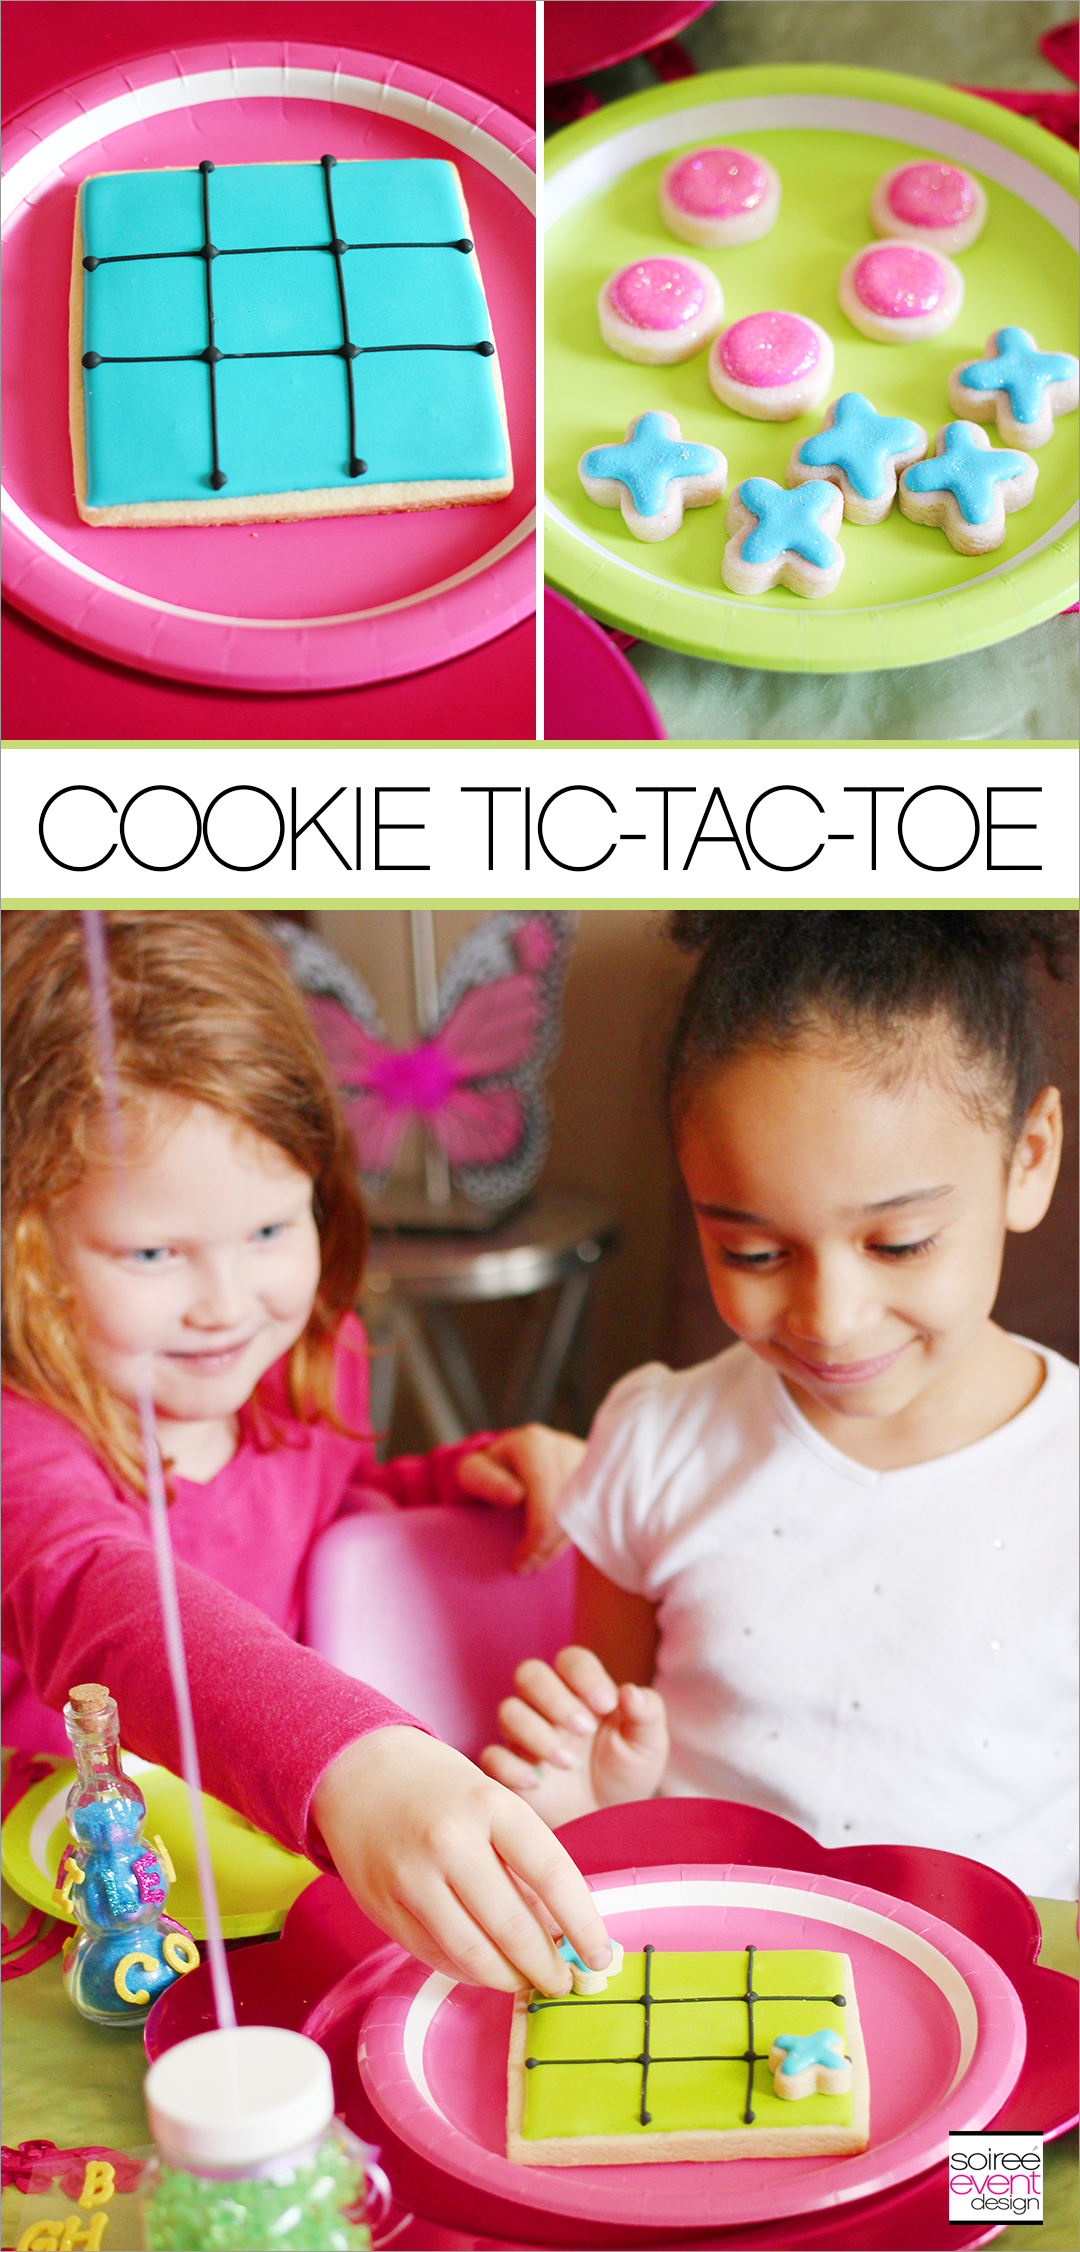 TIC-TAC-TOE COOKIES